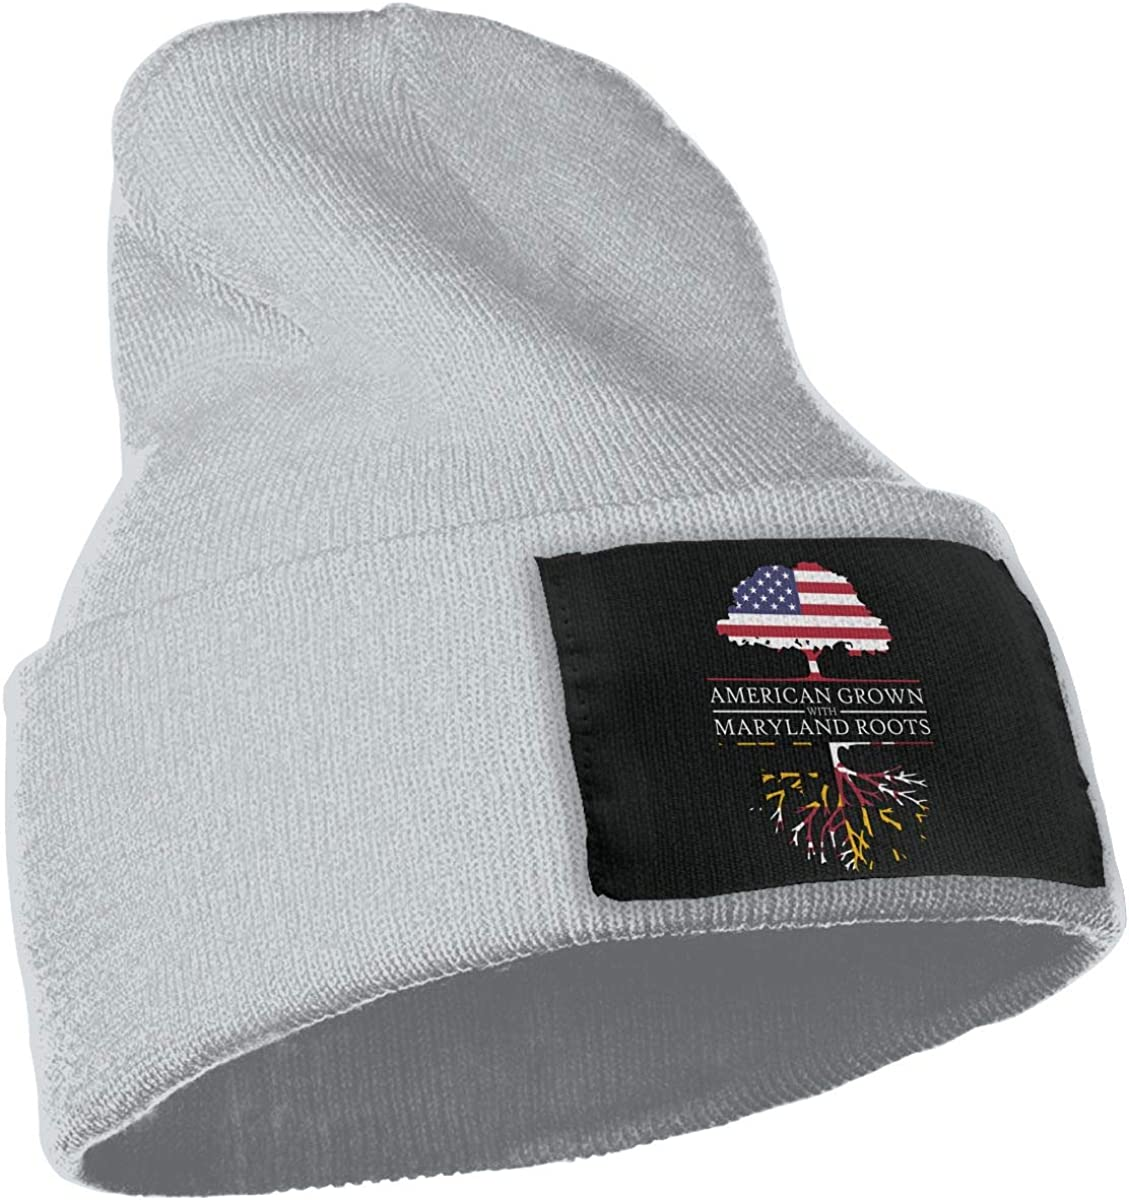 American Grown with Maryland Roots Men Women Knit Hats Stretchy /& Soft Skull Cap Beanie